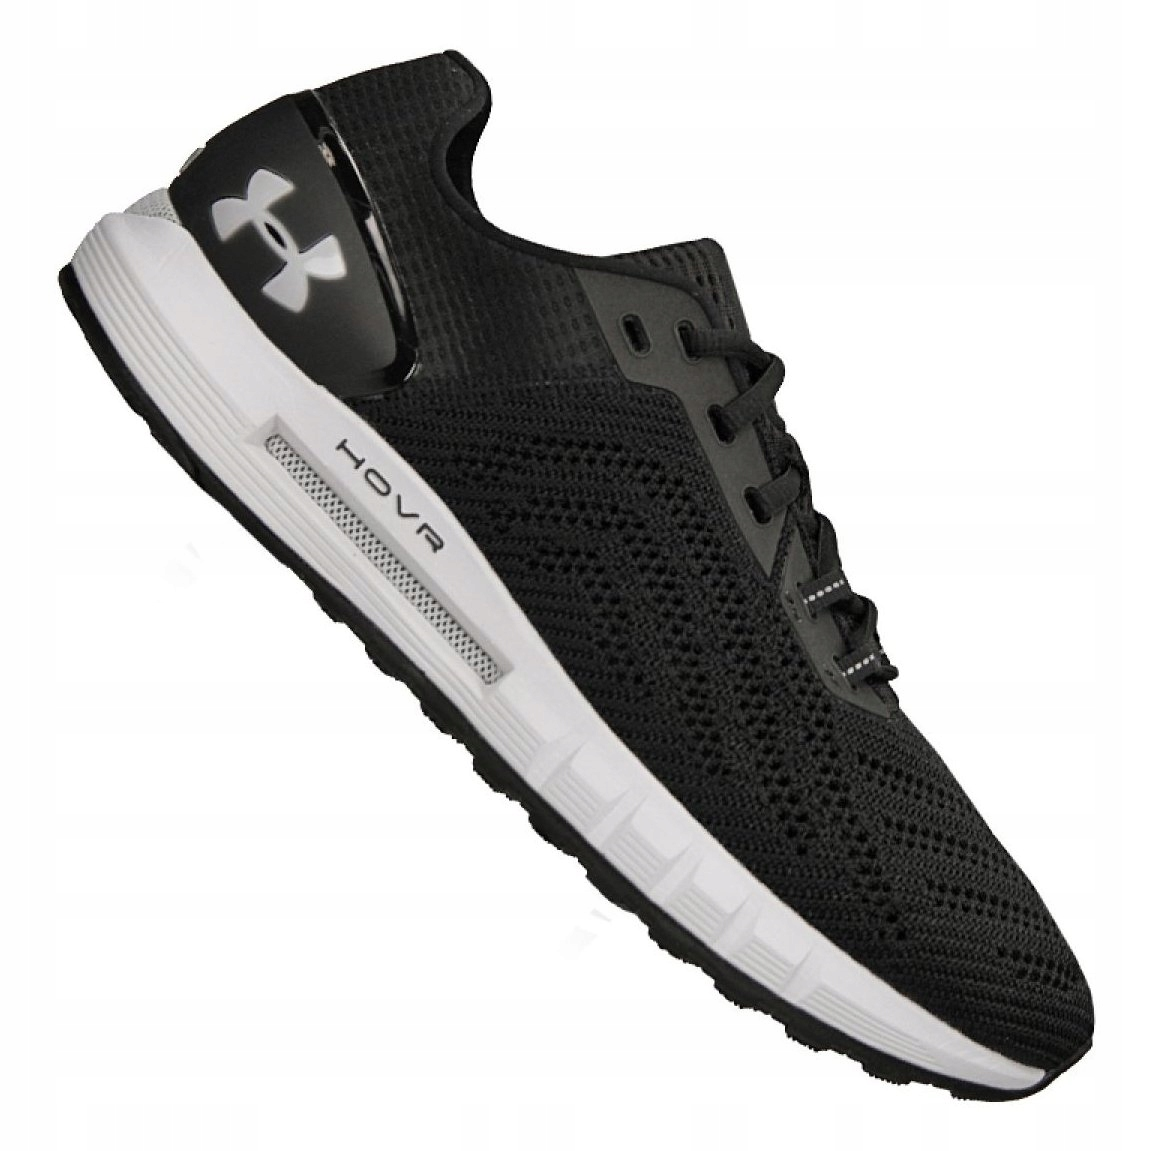 Buty biegowe Under Armour Hovr Sonic 2 M r.46